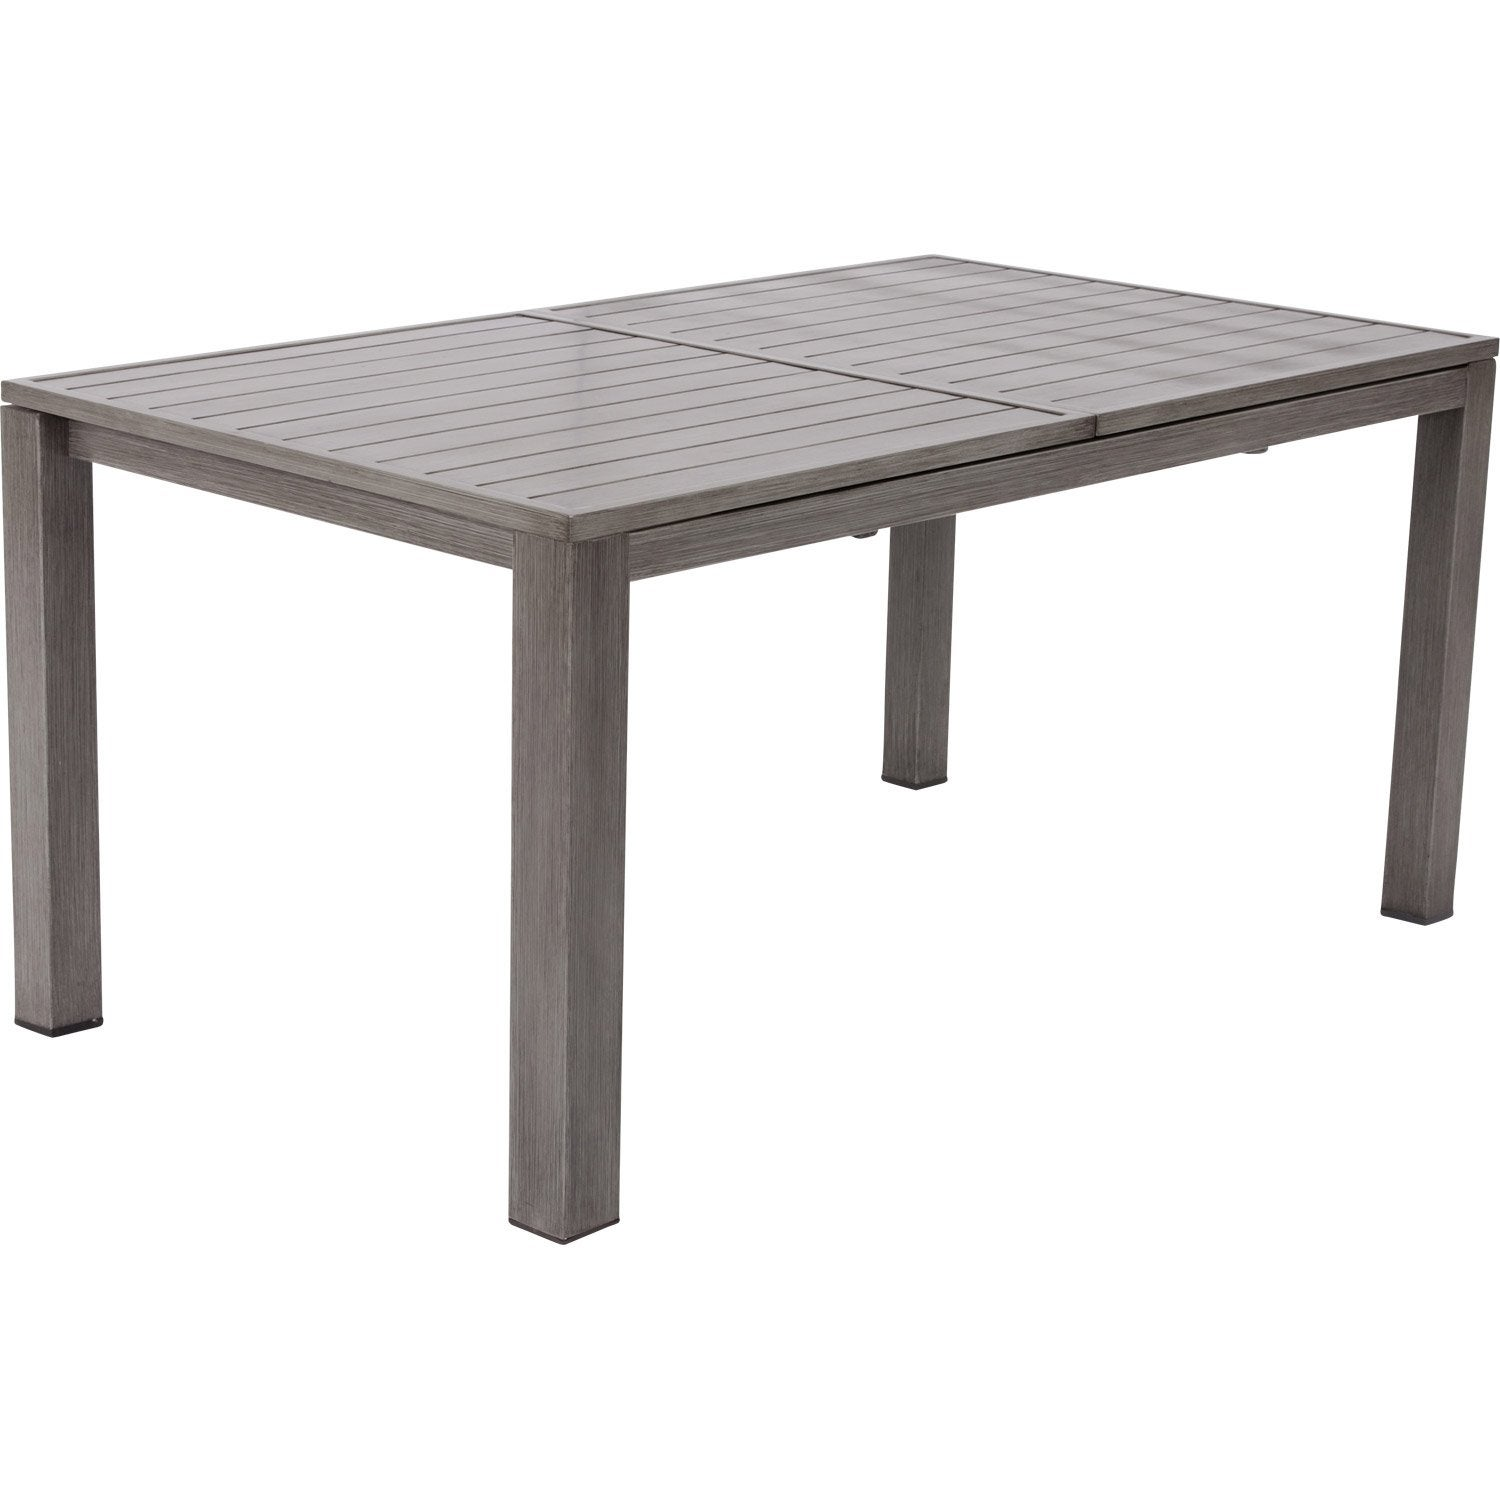 Table de jardin naterial antibes rectangulaire gris look Prix table de jardin